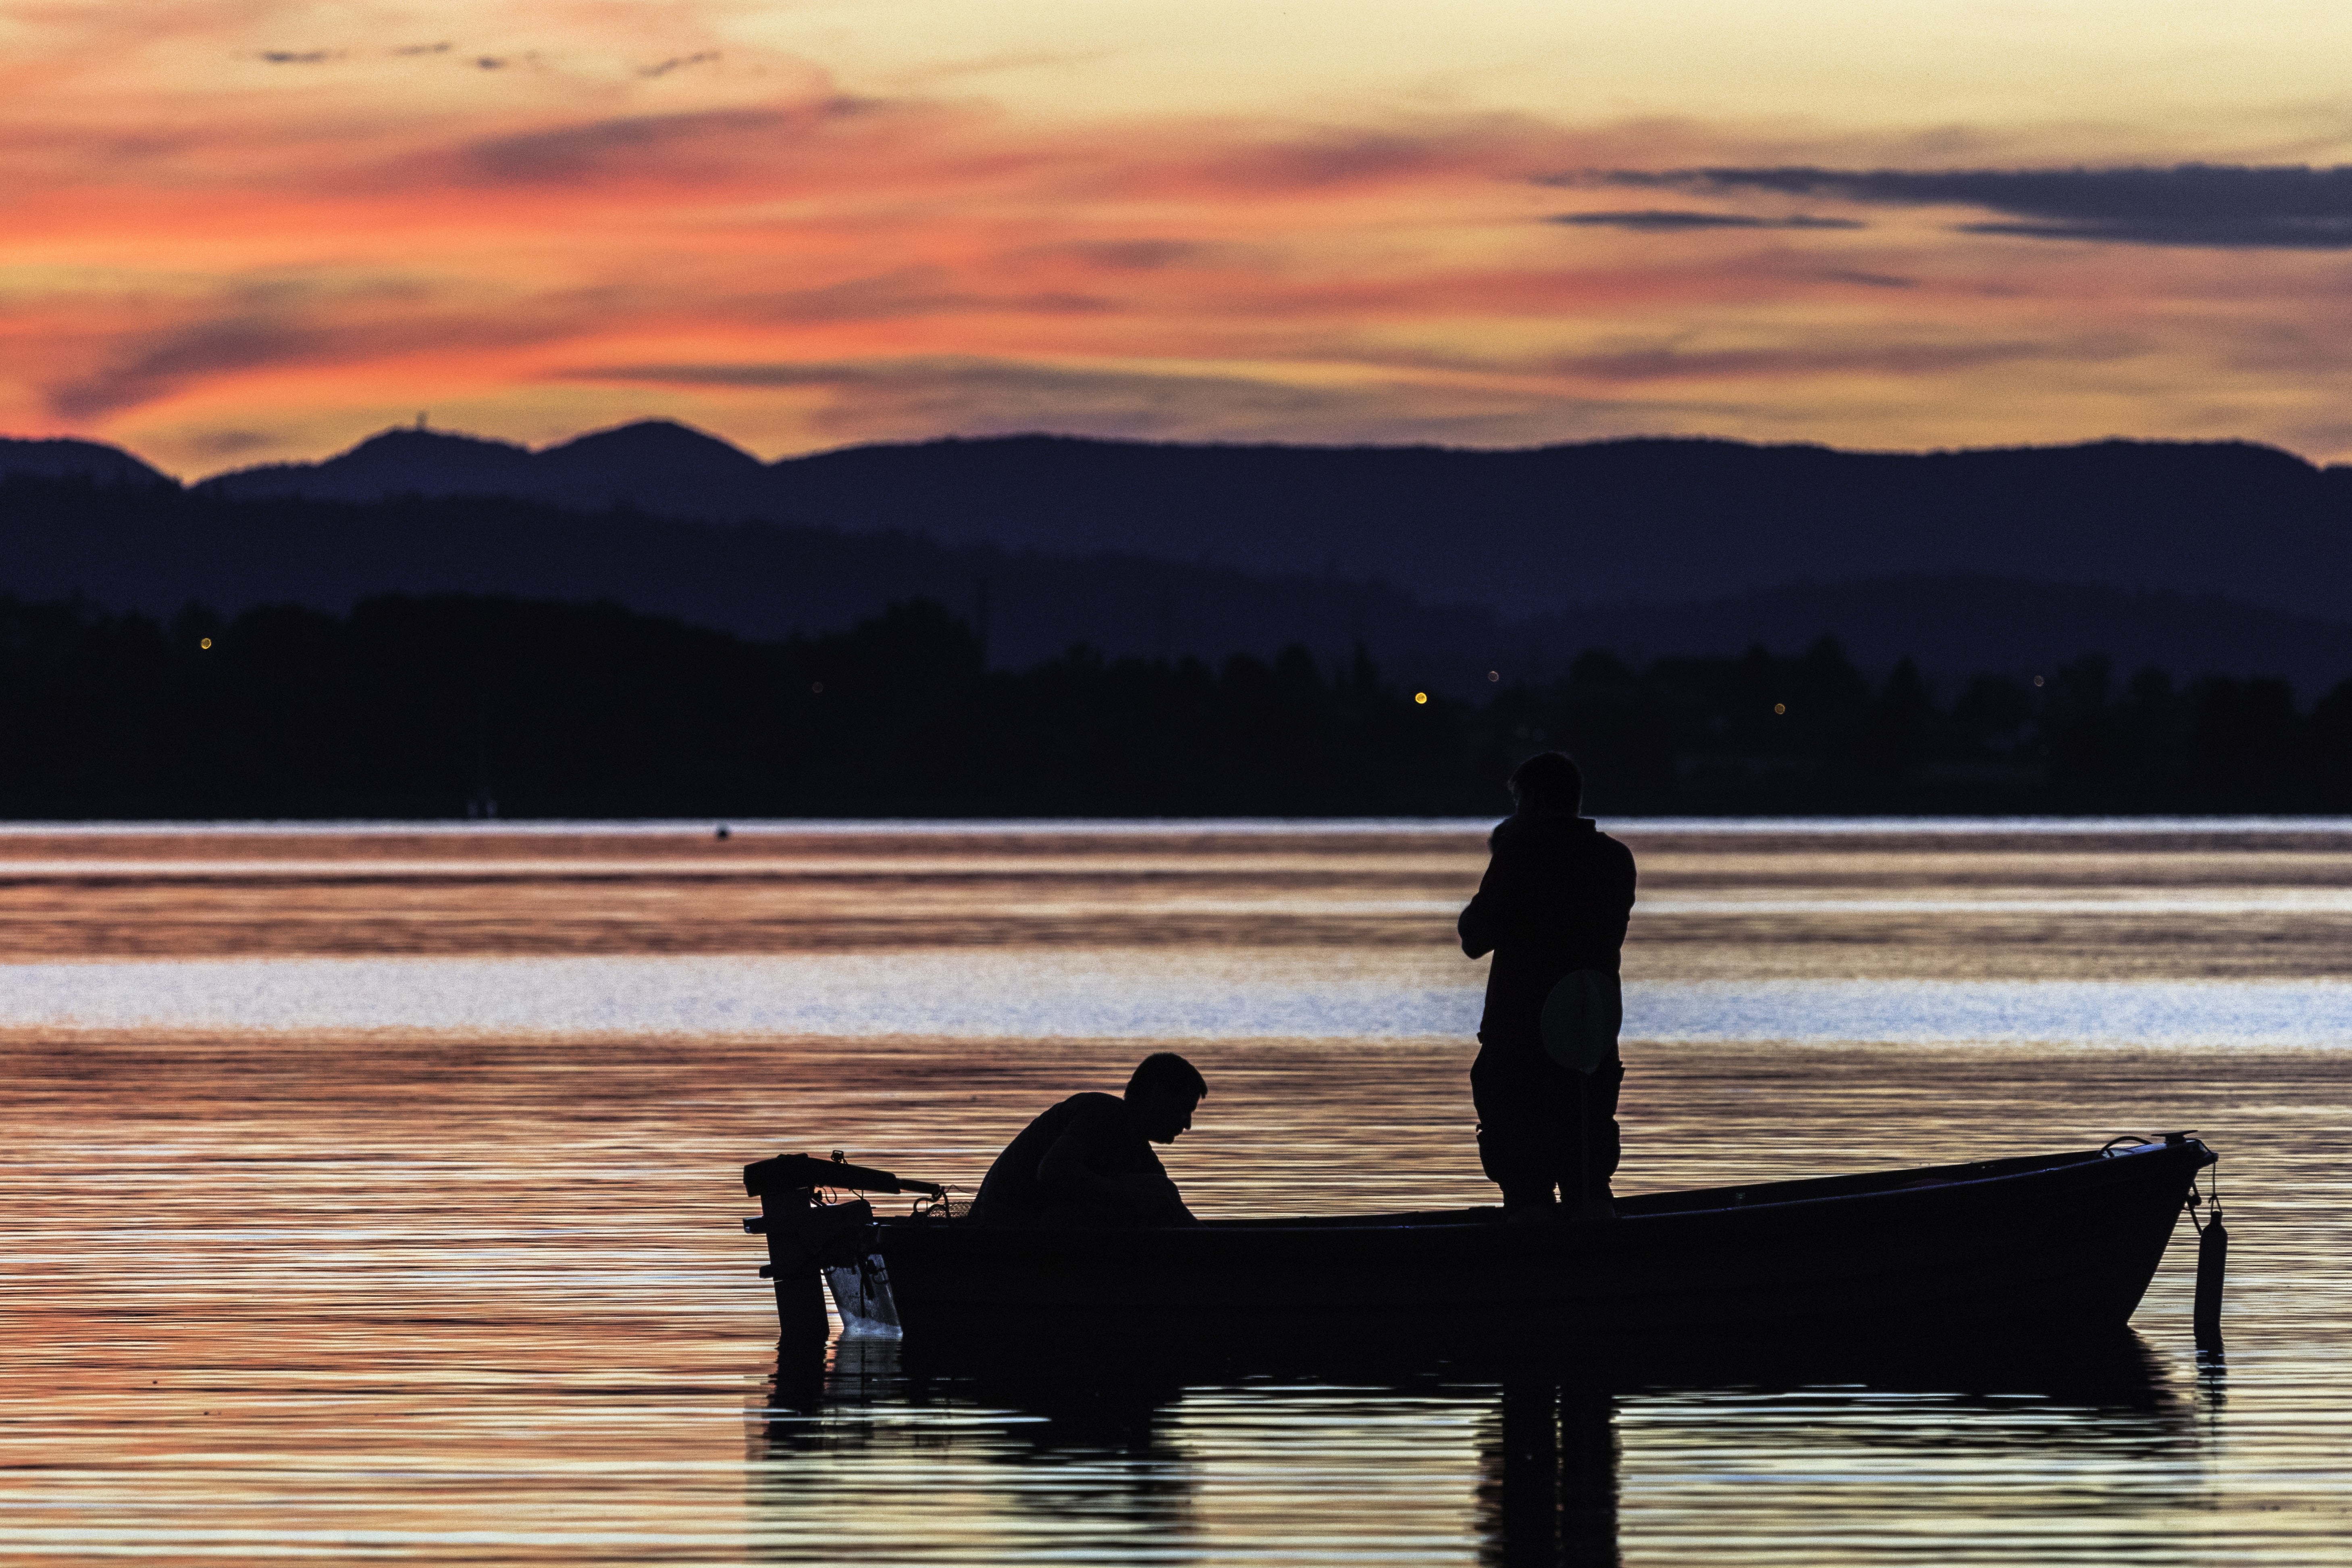 Silhouette of two men on a boat gliding across the Hallwilersee waters in Meisterschwanden during sunset